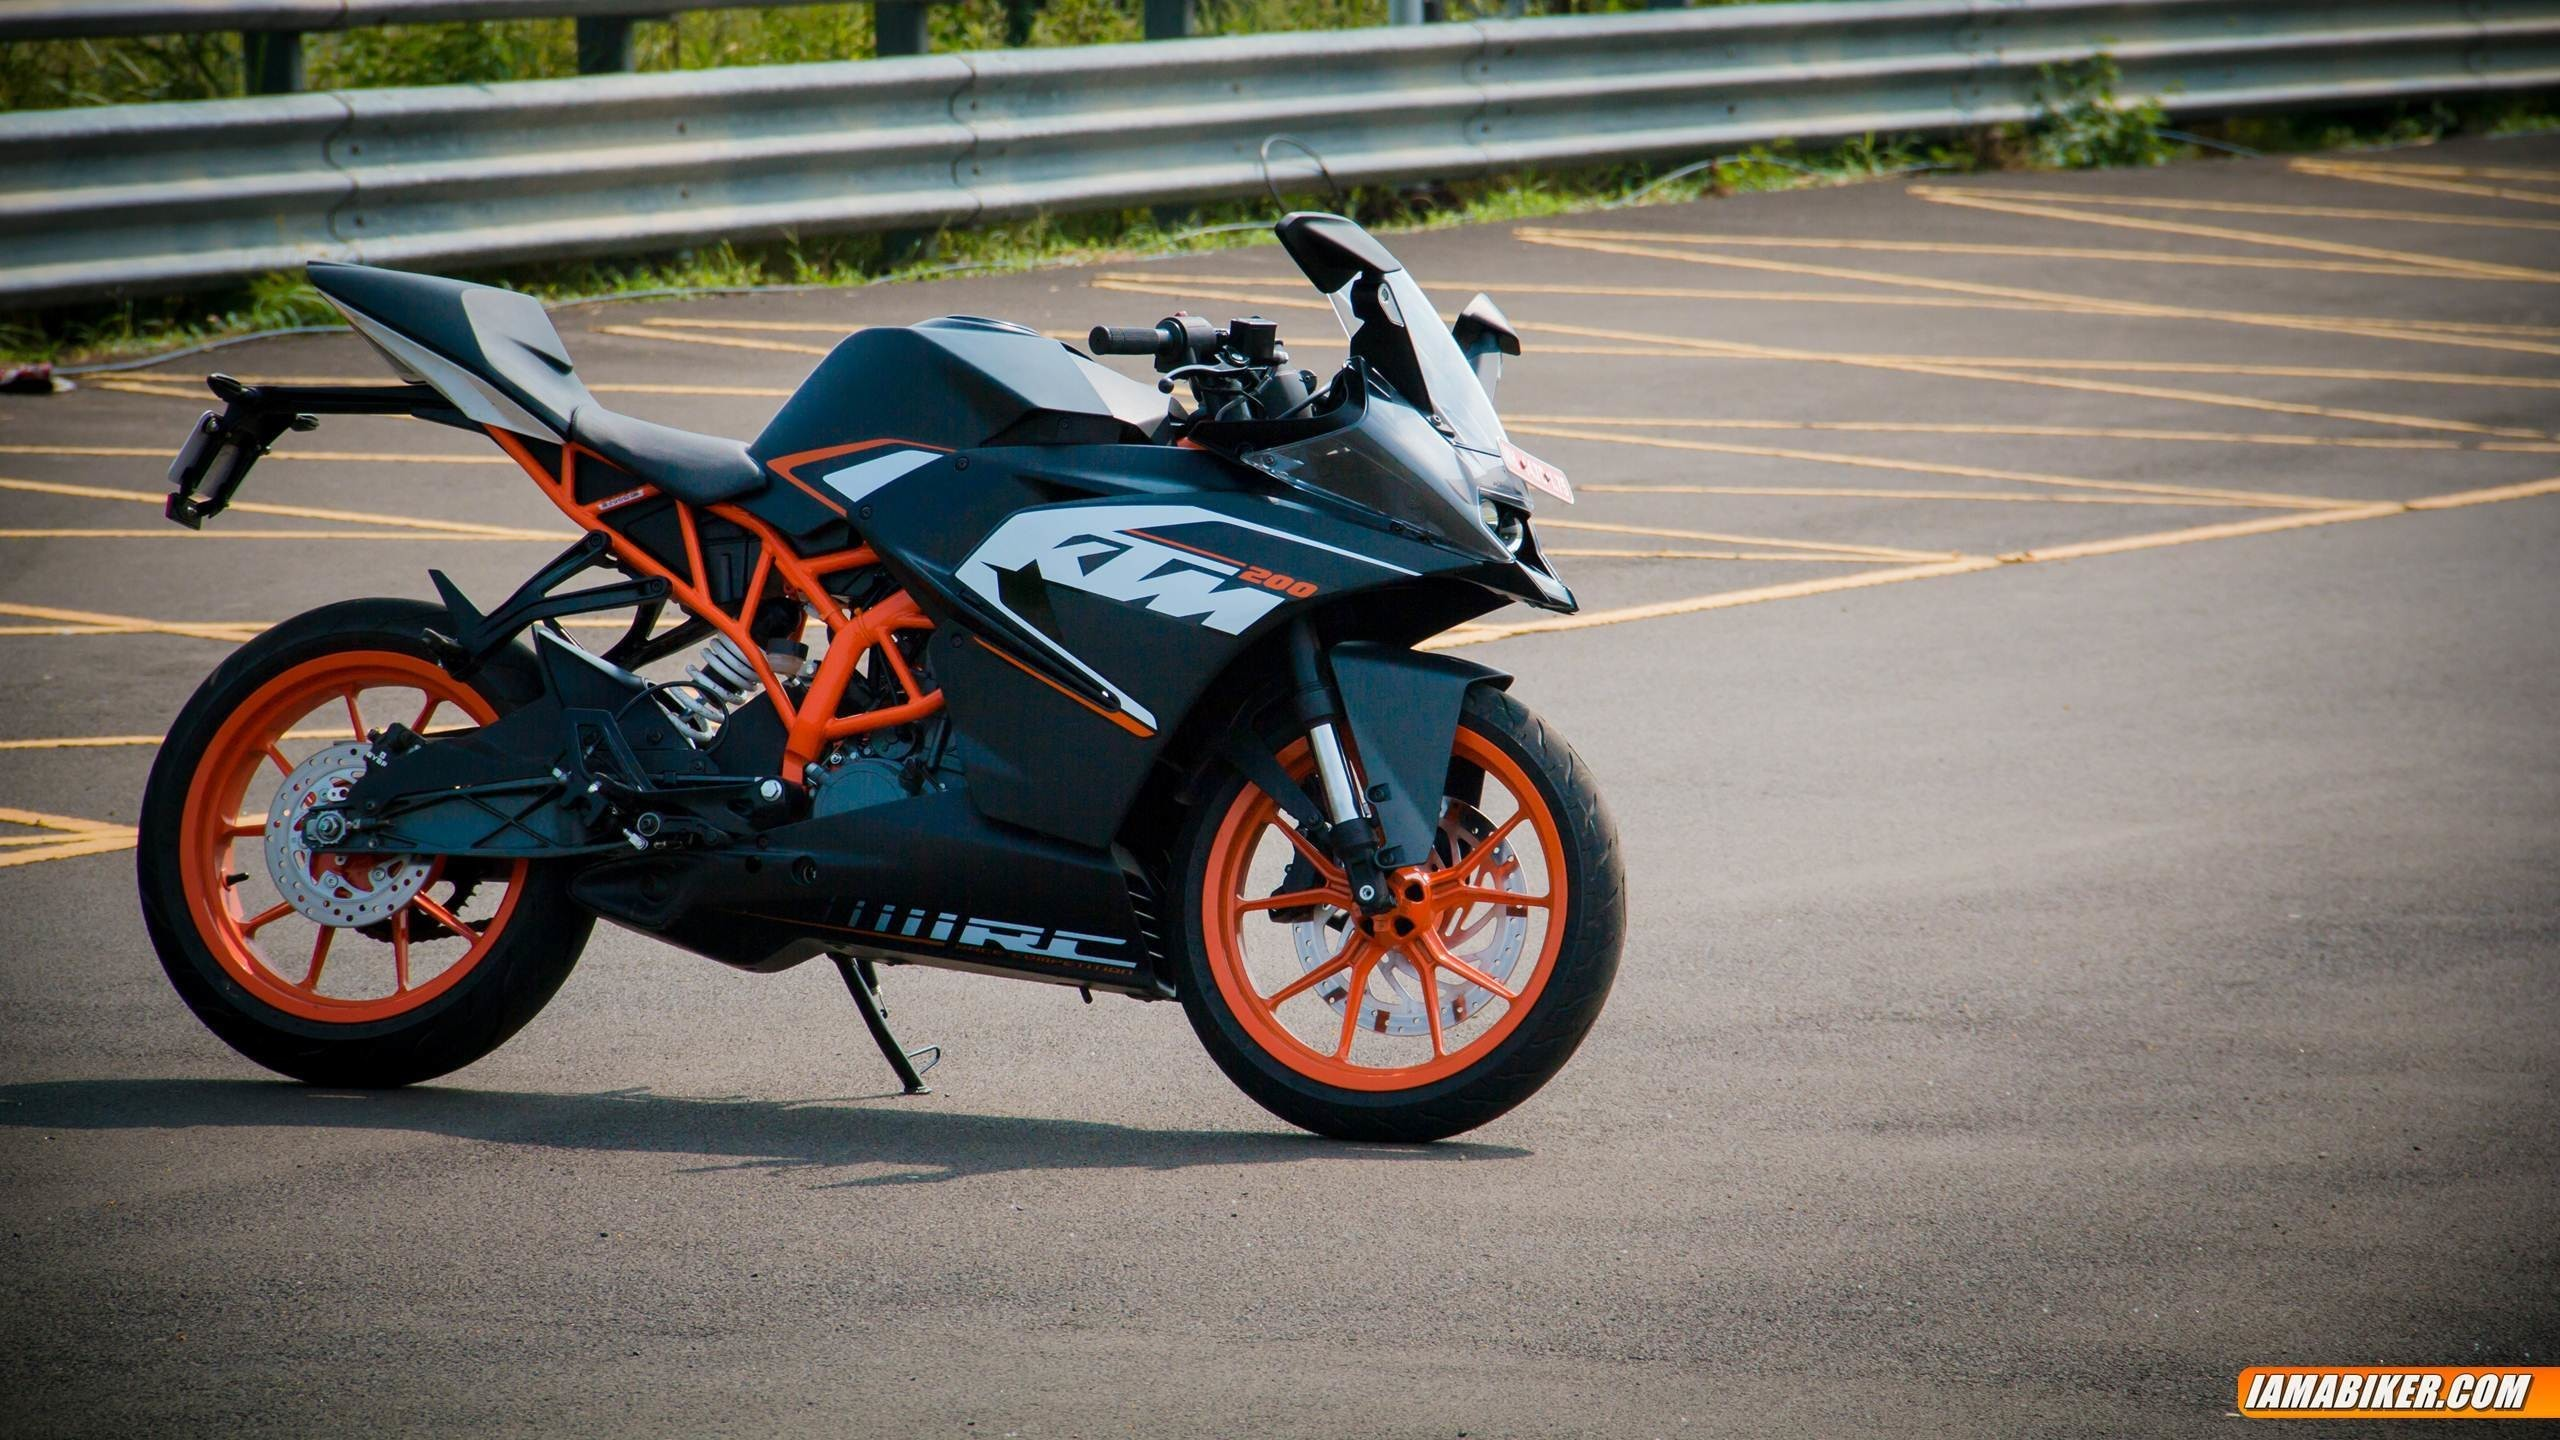 2560x1440 1920x1080 Ktm Duke 690 Stunt HD Wallpaper